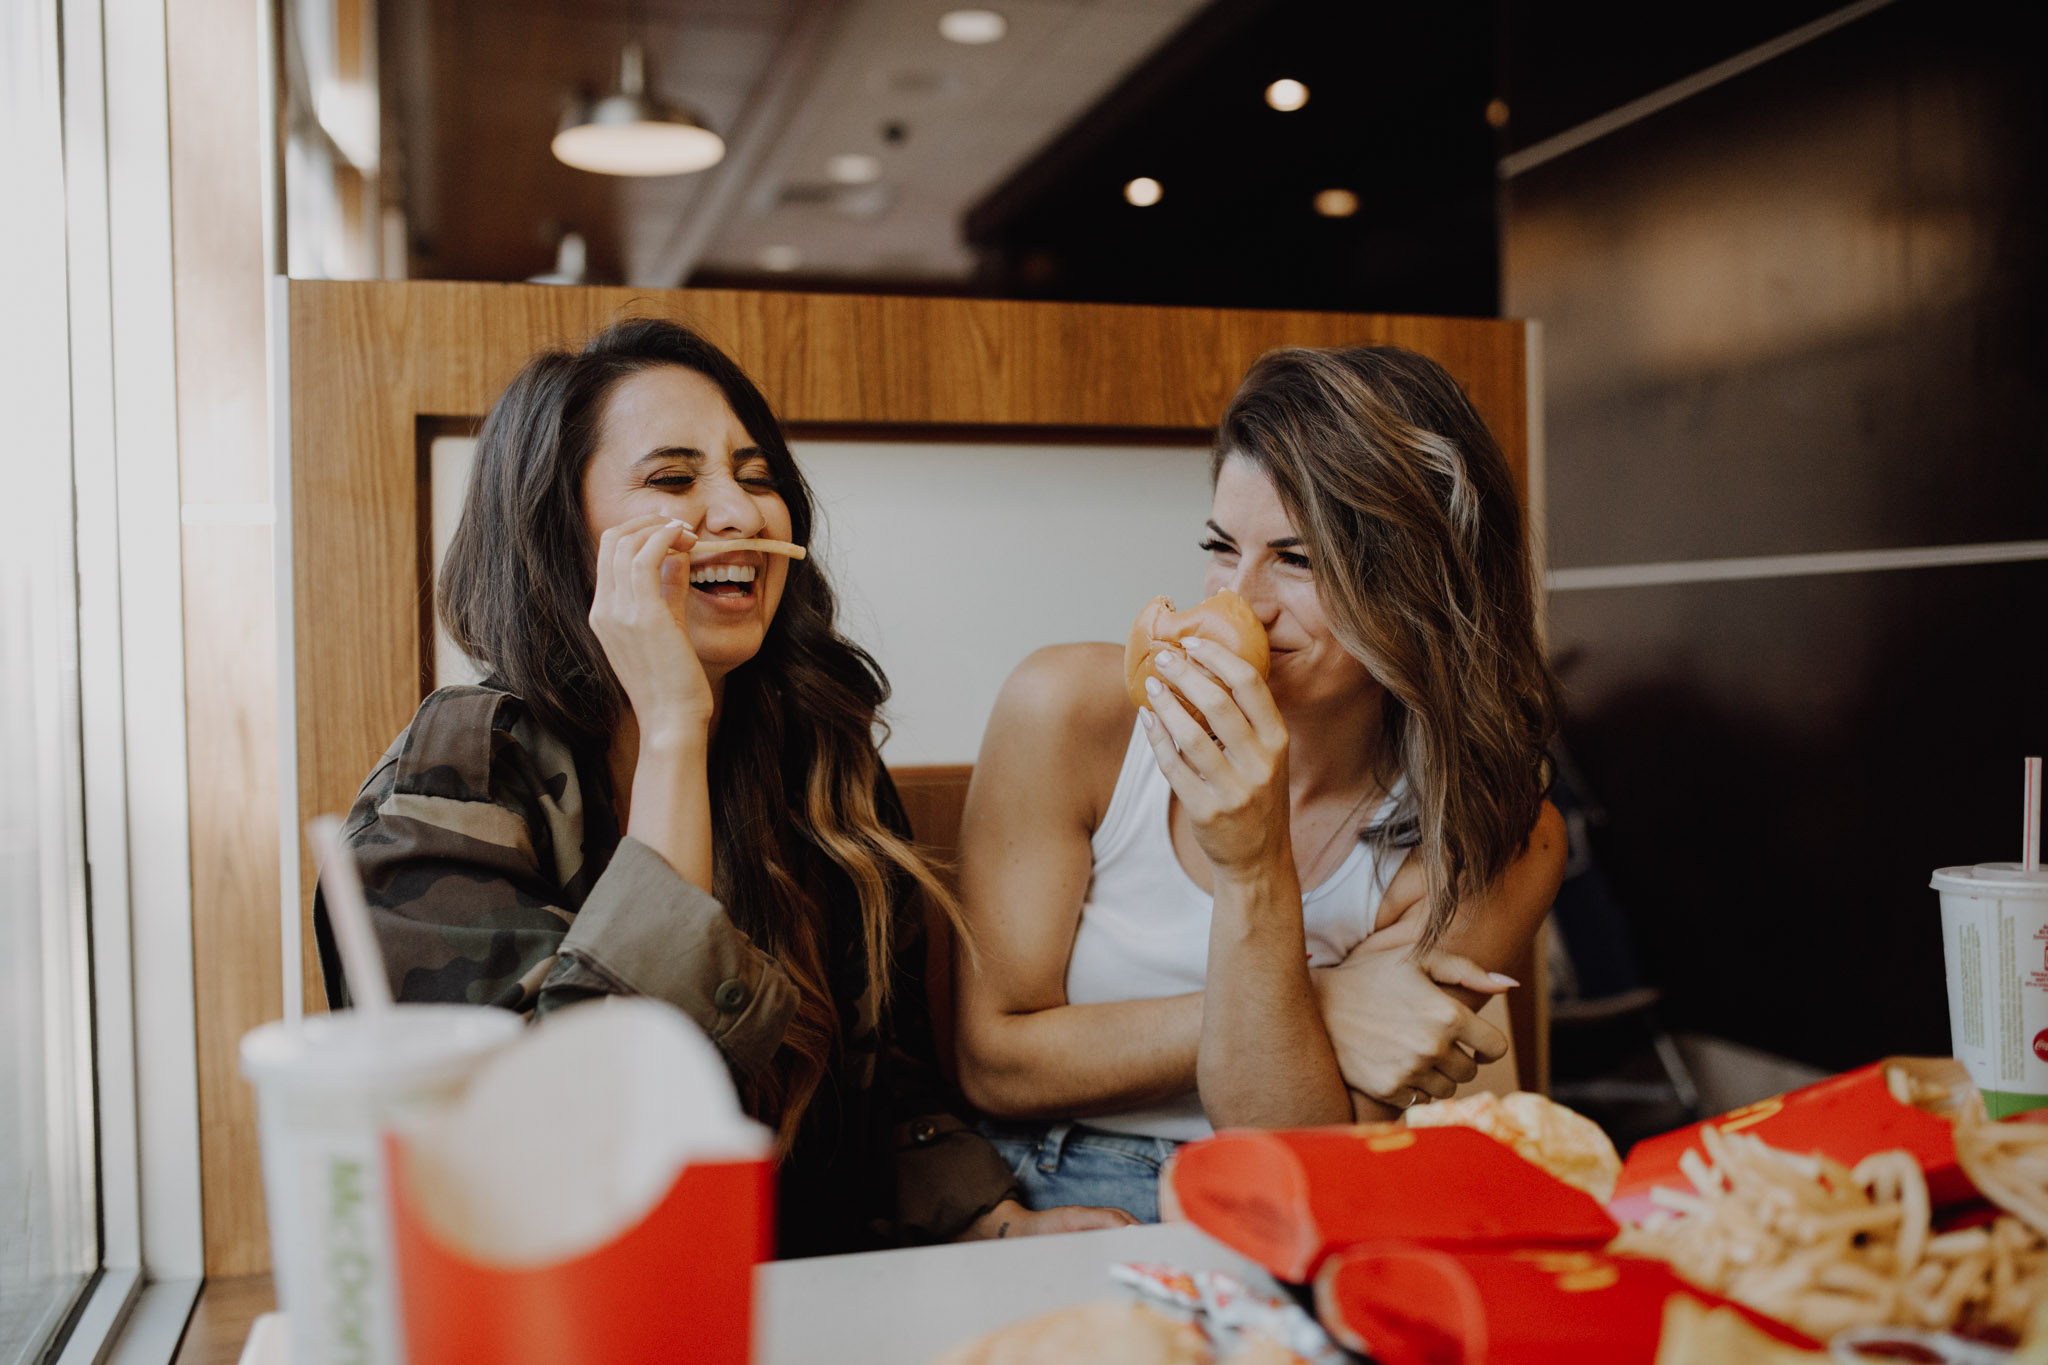 Mcdonalds engagement session - playing with fries